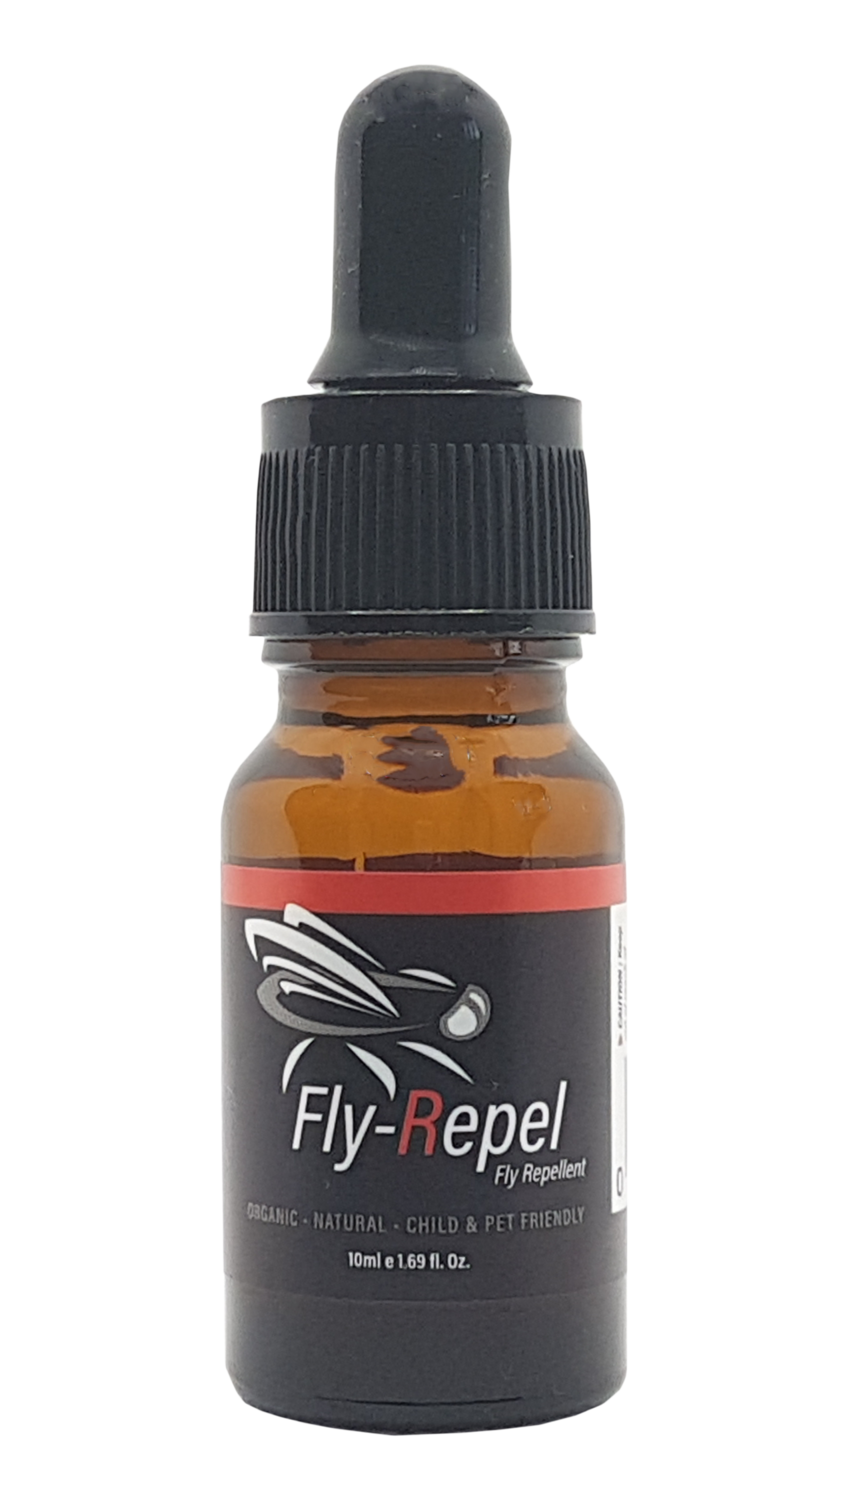 Fly-Repel Fly Repellent - 10ml Pure Essential Oil Blend